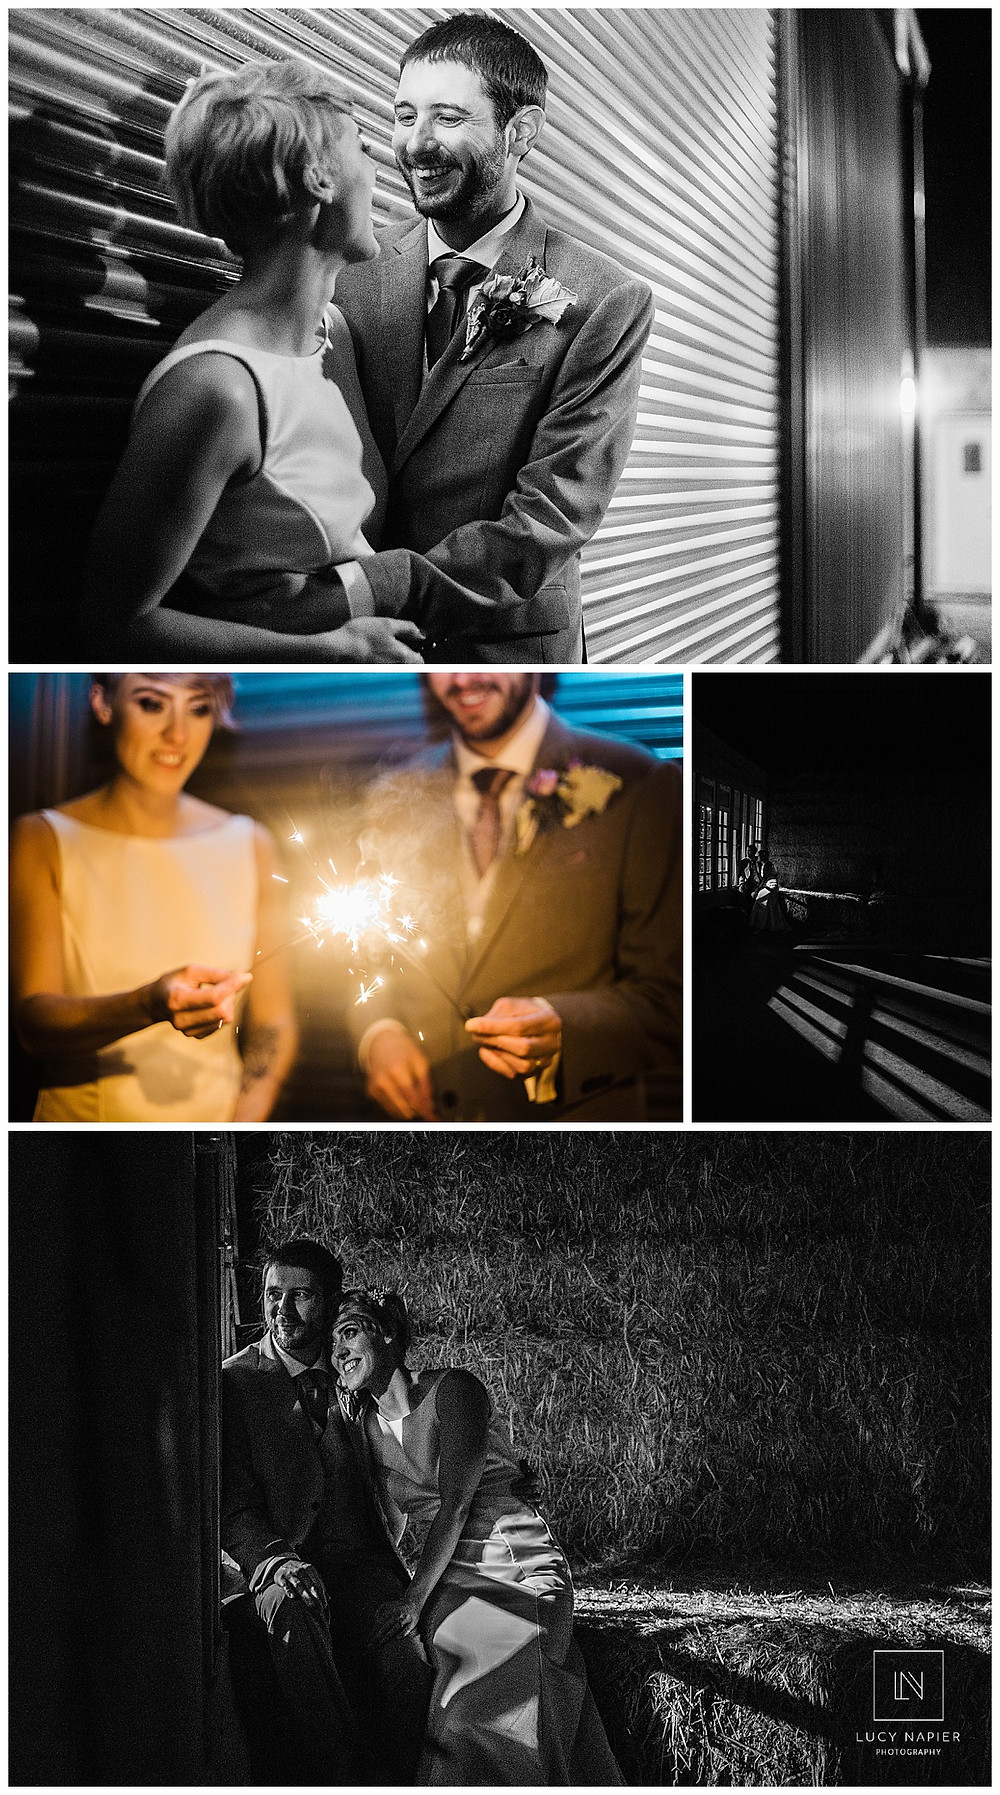 the bride and groom with sparklers, pose in front of some shutters and in the darkness of the hay bales, picked out in the stripes of light